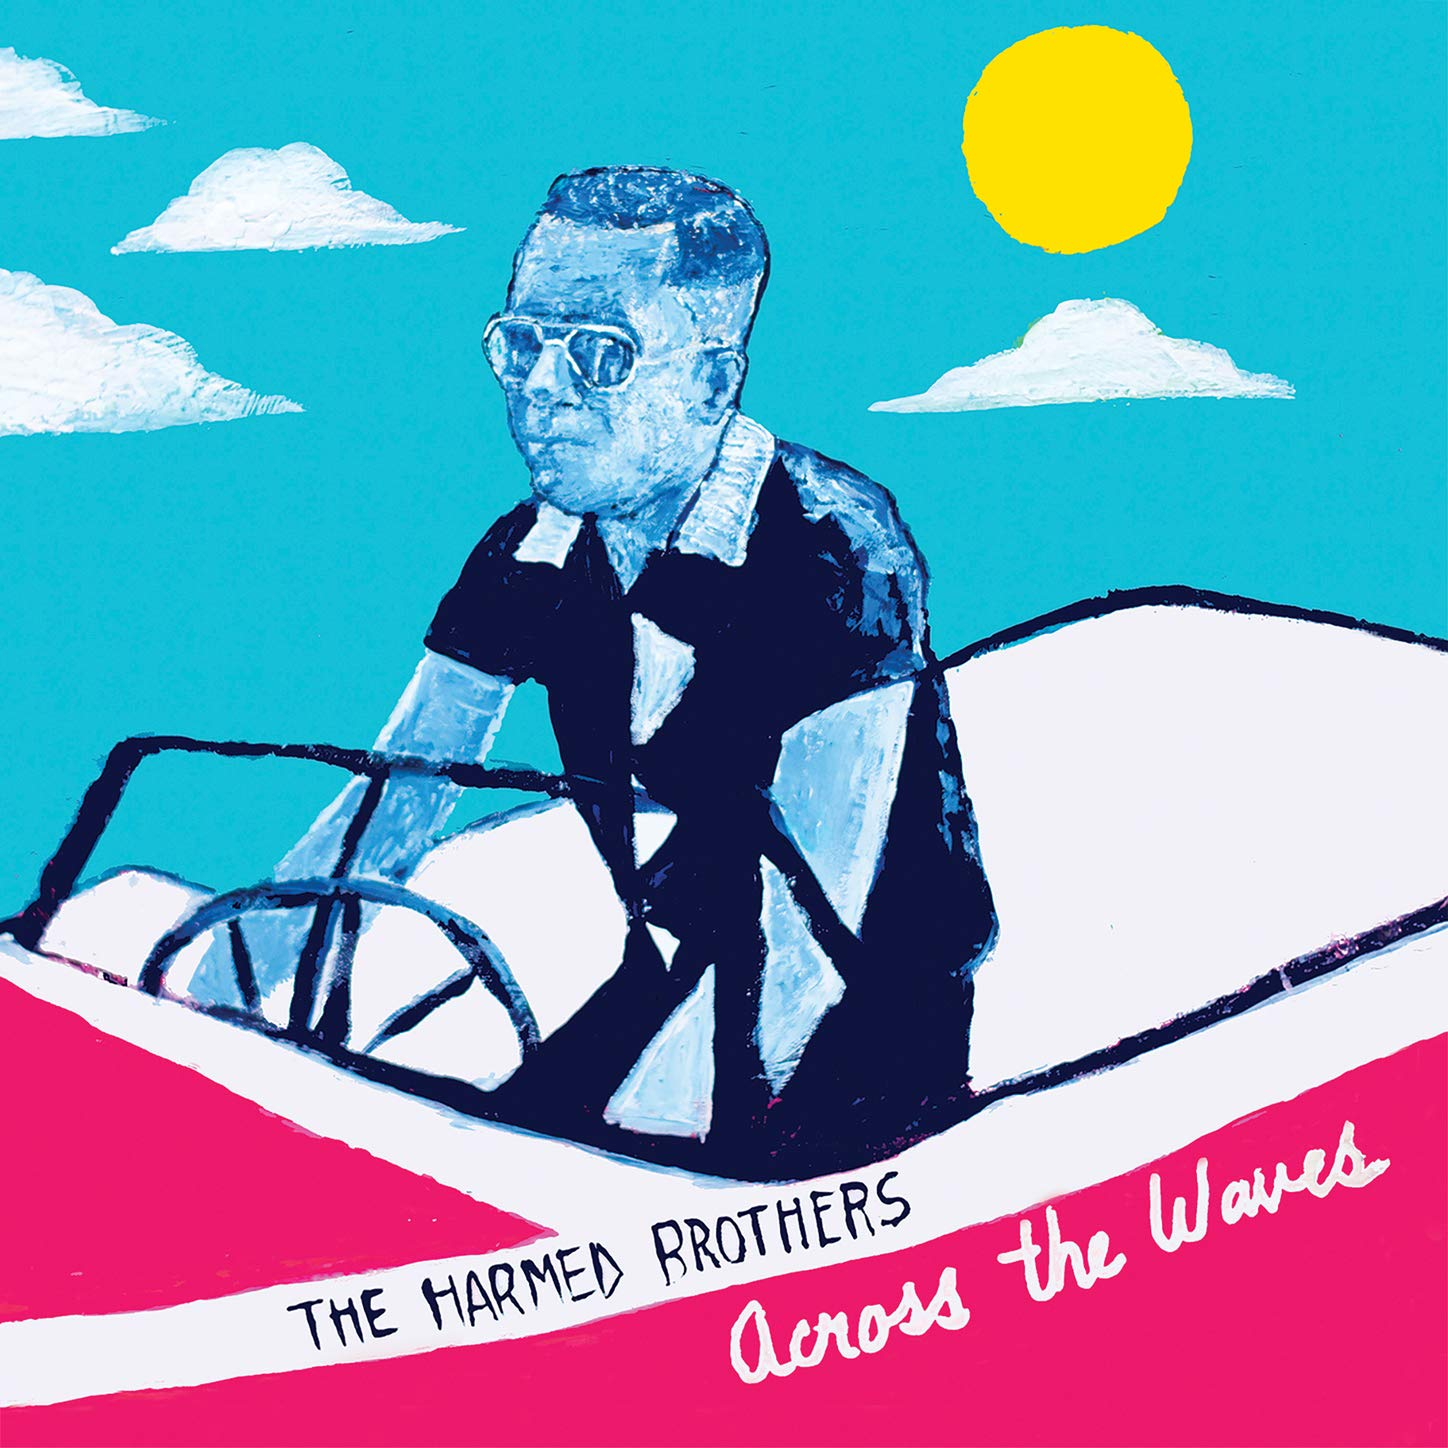 The Harmed Brothers - Across The Waves (2020) [FLAC] Download